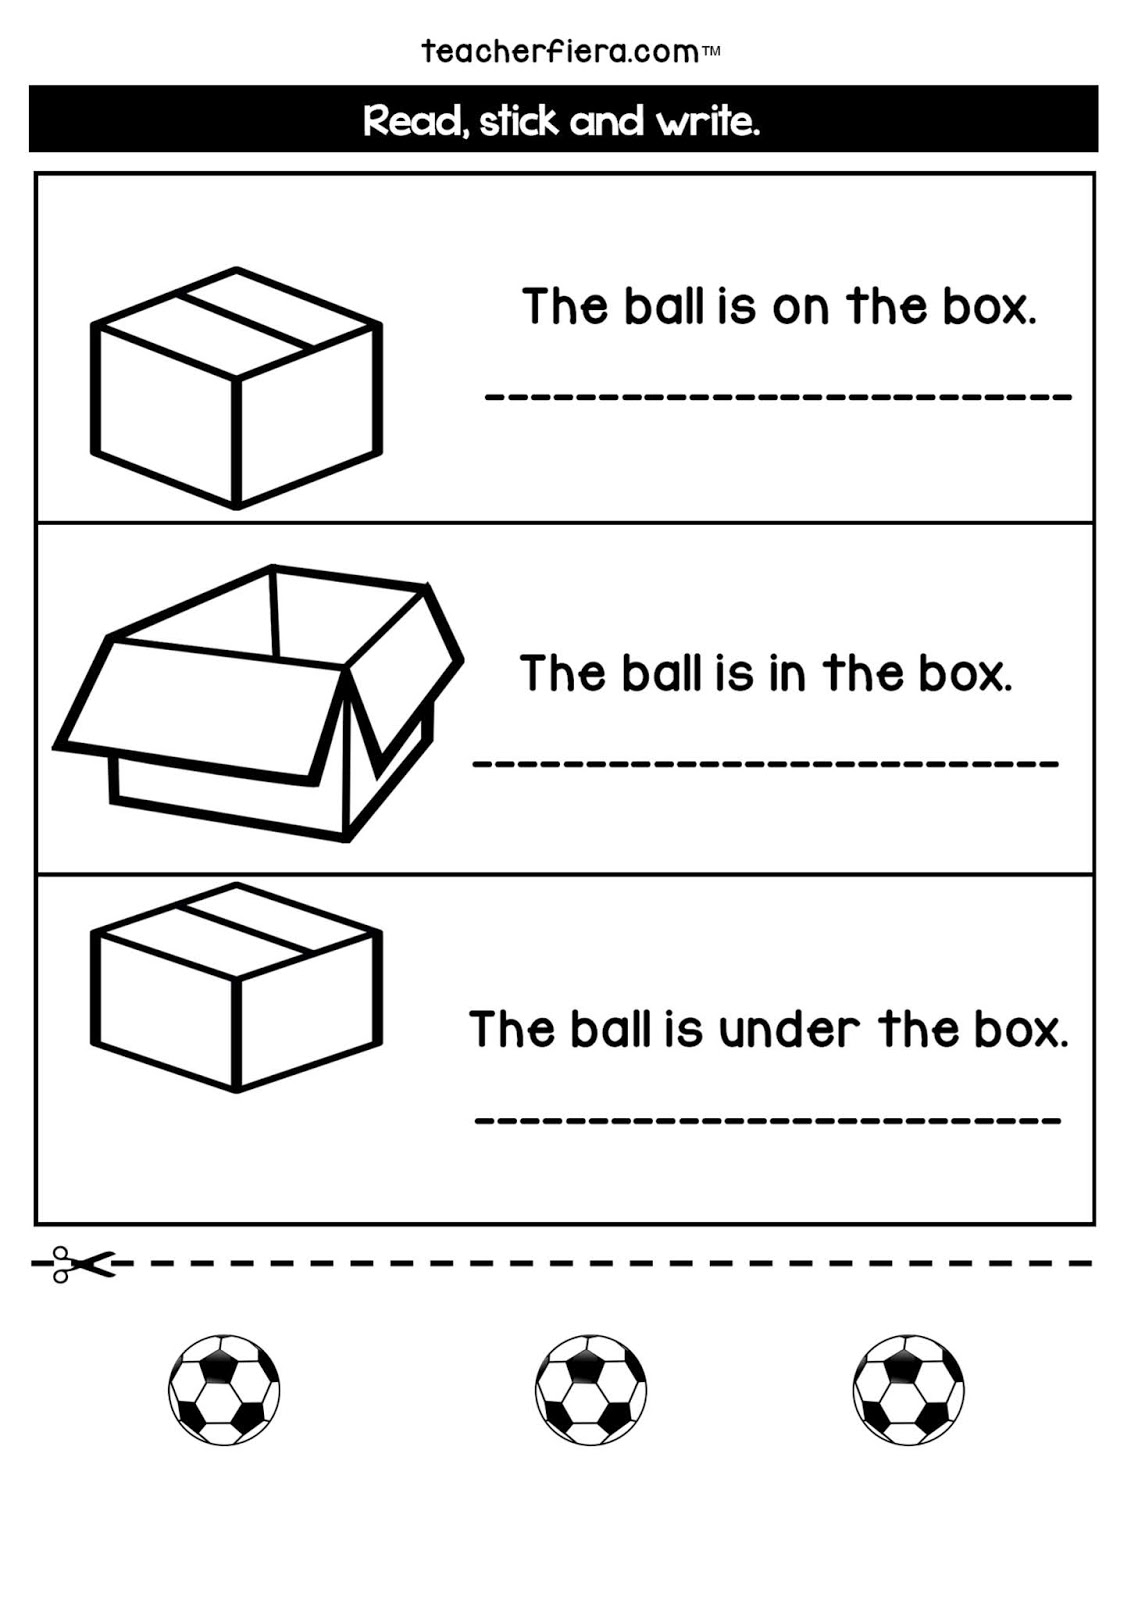 Teacherfiera Year 1 Unit 3 Additional Worksheets